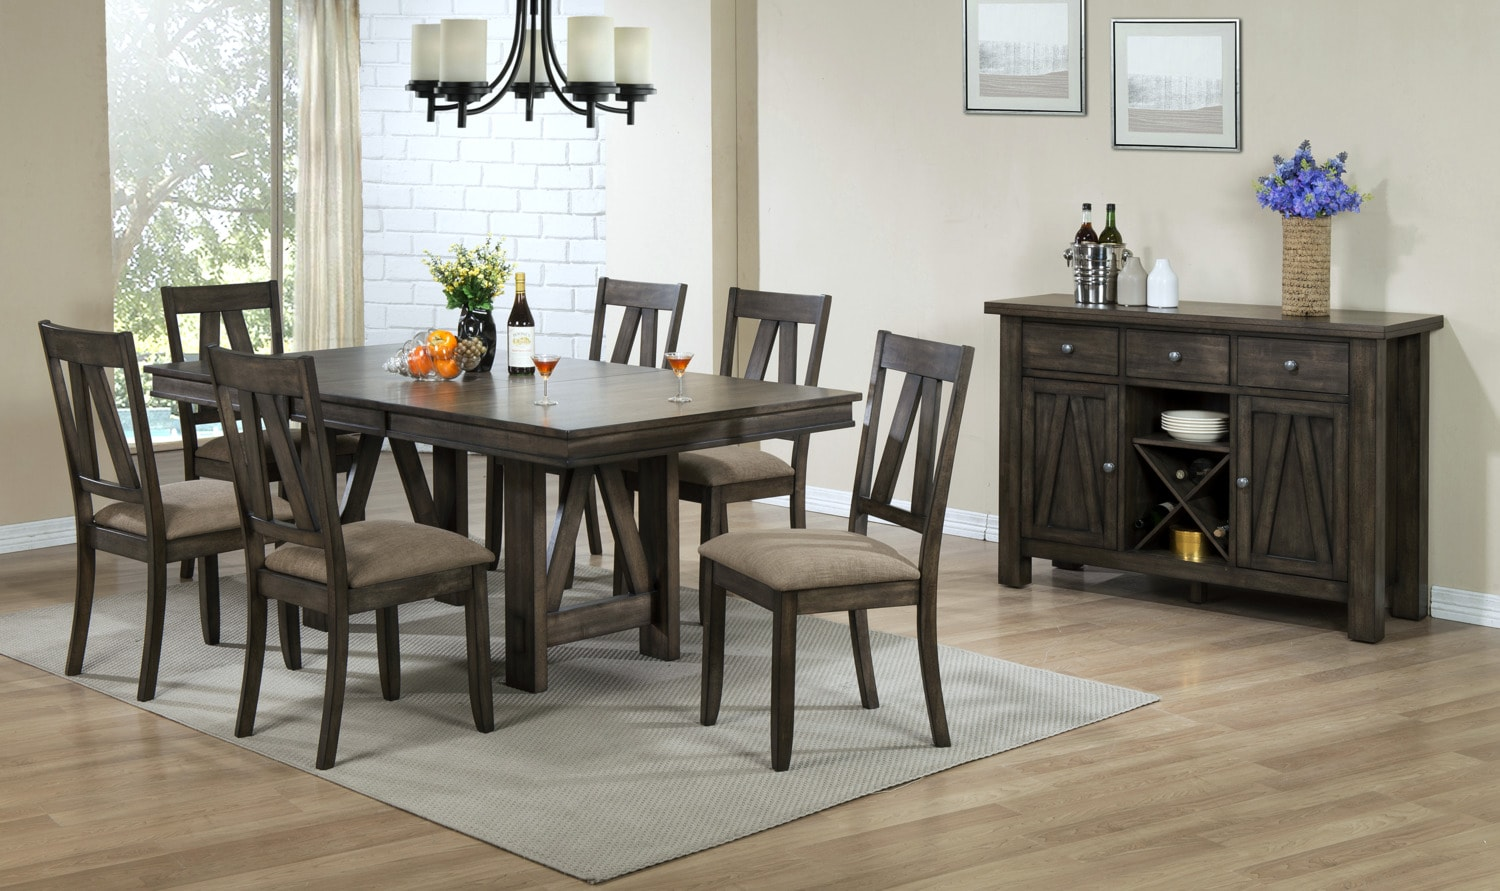 Dining room collections dining sets canada leon 39 s for Dining room tables victoria bc